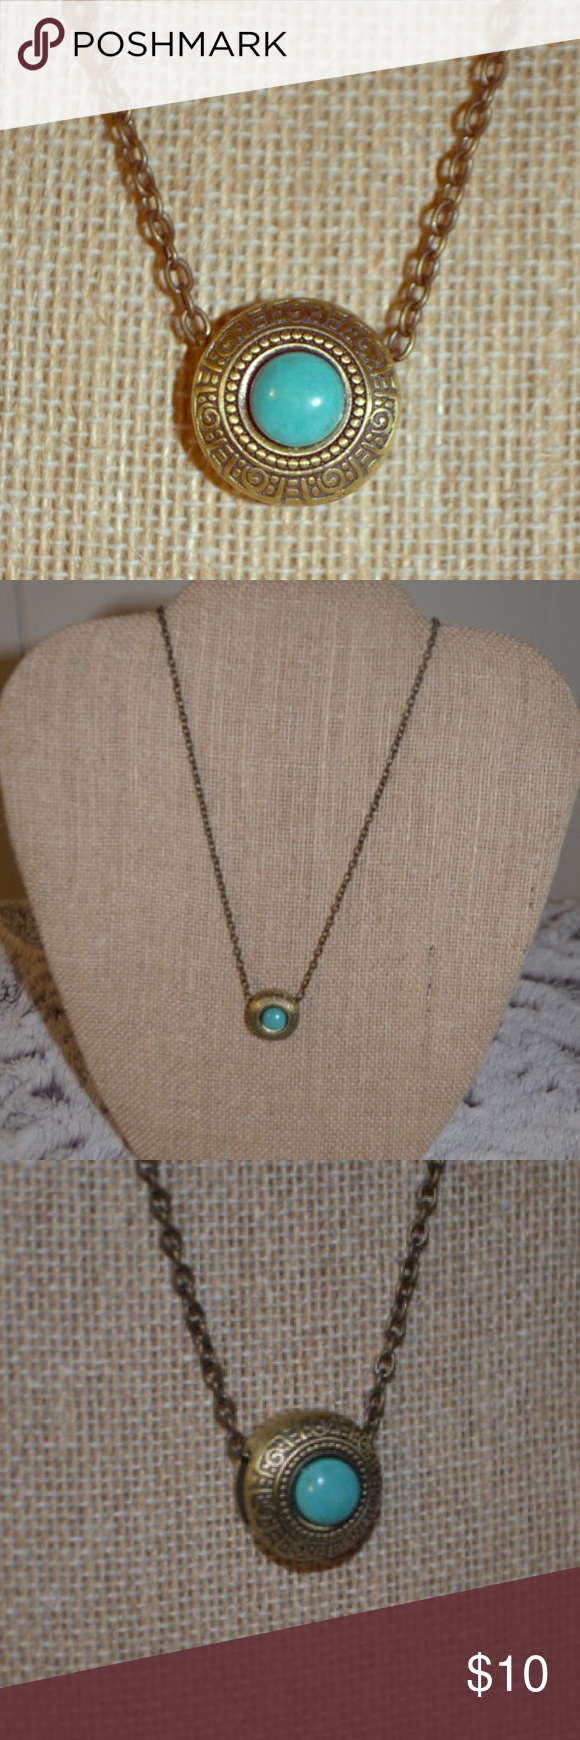 Bronze chain necklace with turquoise pendant Beautiful bronze chain necklace with turquoise pendant. Chain is 18 inches in length. Jewelry Necklaces